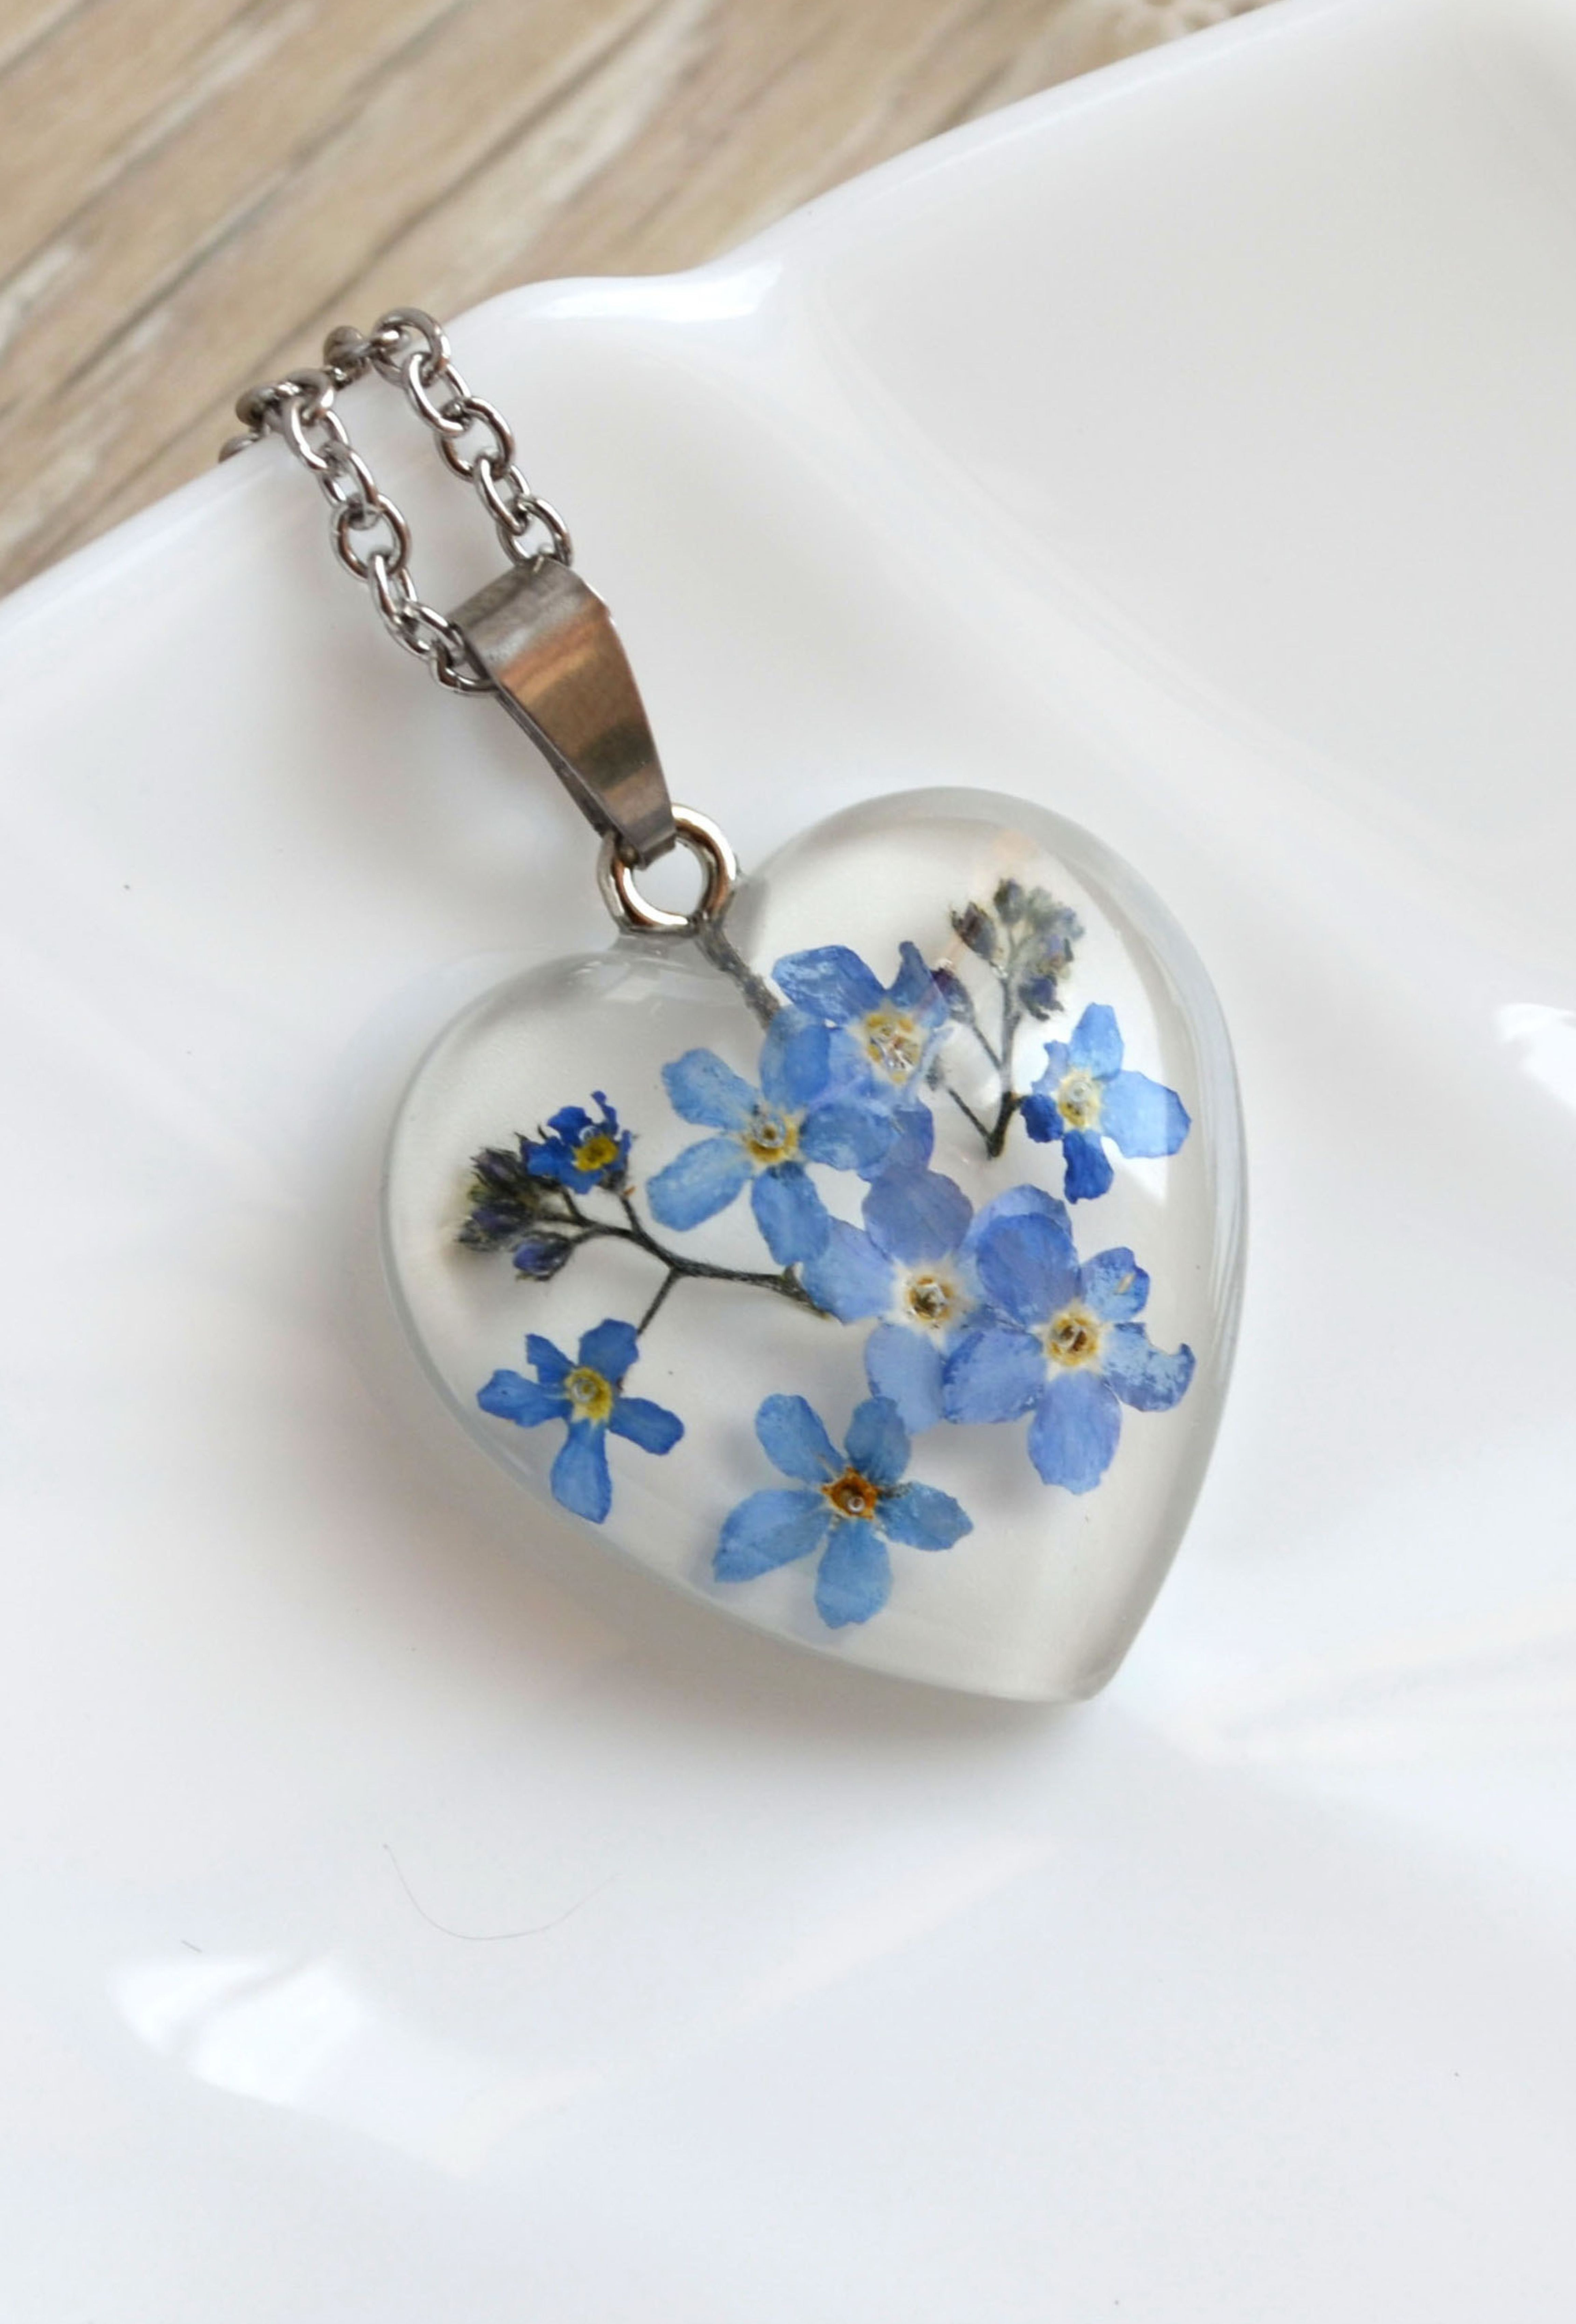 Crystal pressed flowers necklace,Resin jewelry,Dried flowers in resin crystal,Blue flowers necklace,Botanical necklace,Nature jewelry